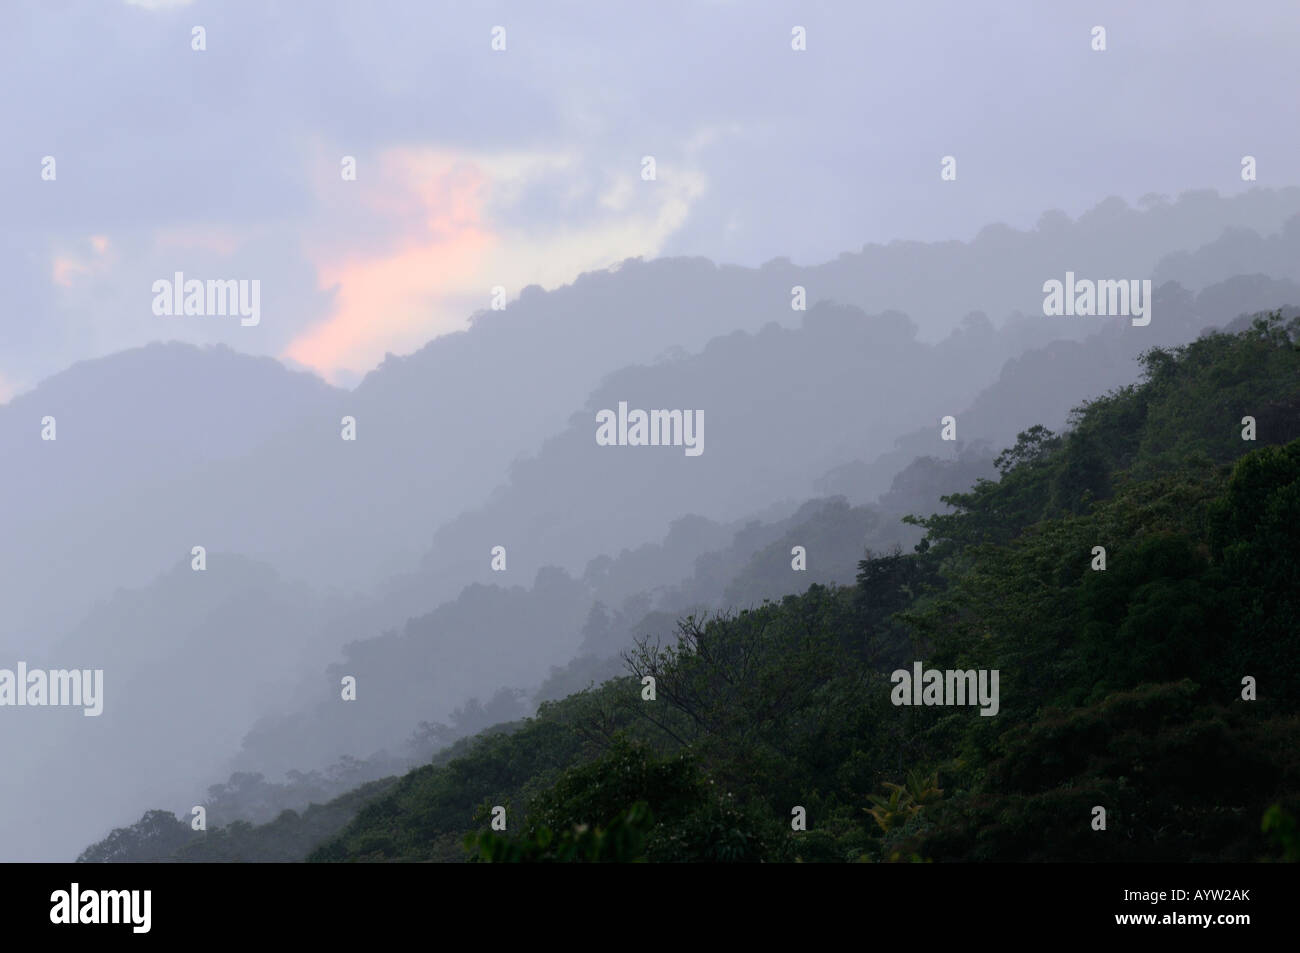 Receding steamy hills on the Osa Peninsula coast at dusk in Costa Rica - Stock Image